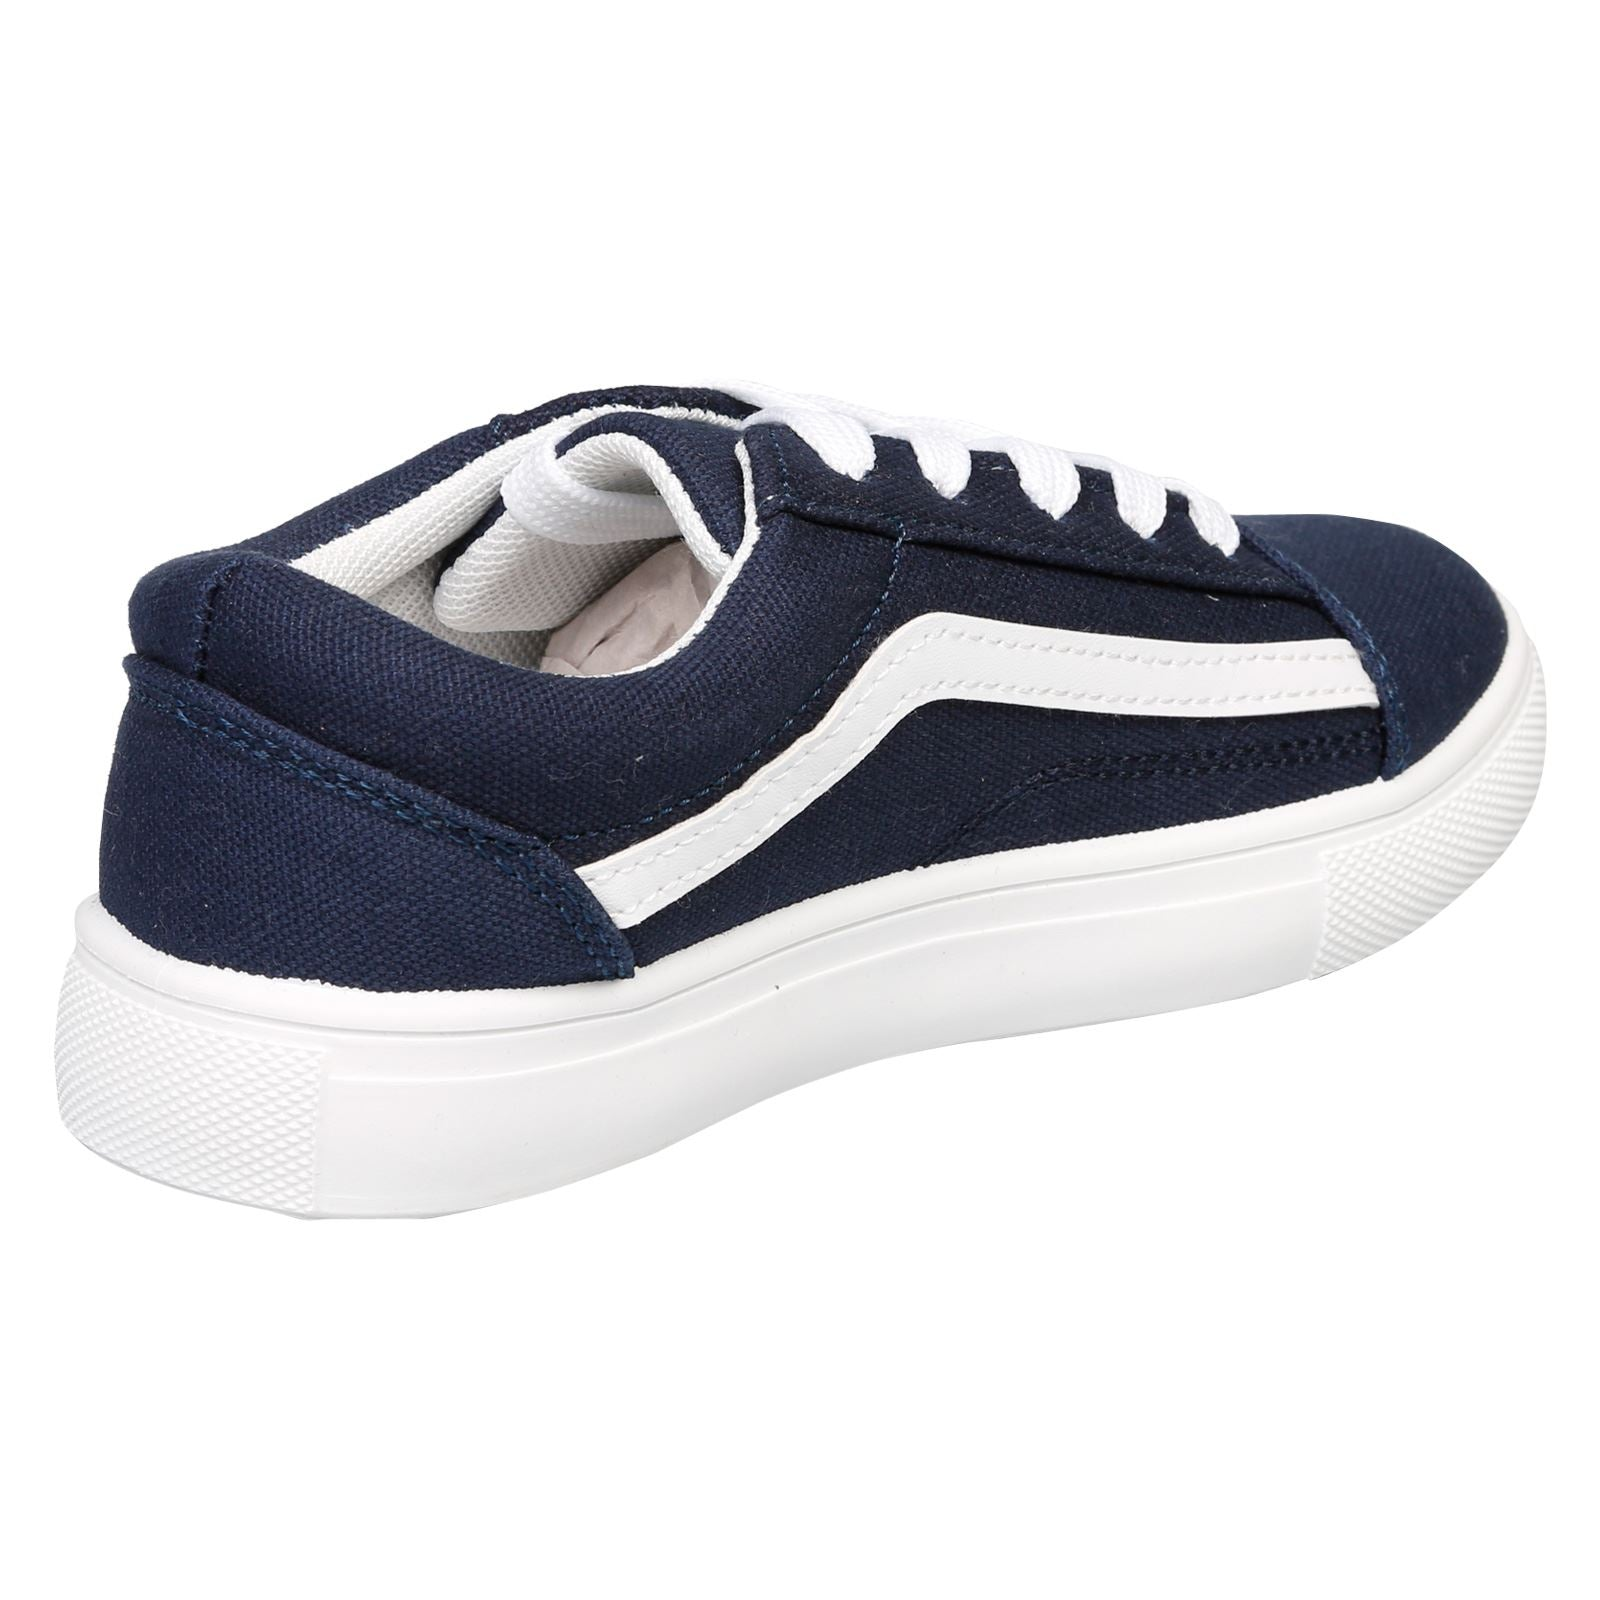 Hailee Girls Lace Up Trainers in Blue - Feet First Fashion